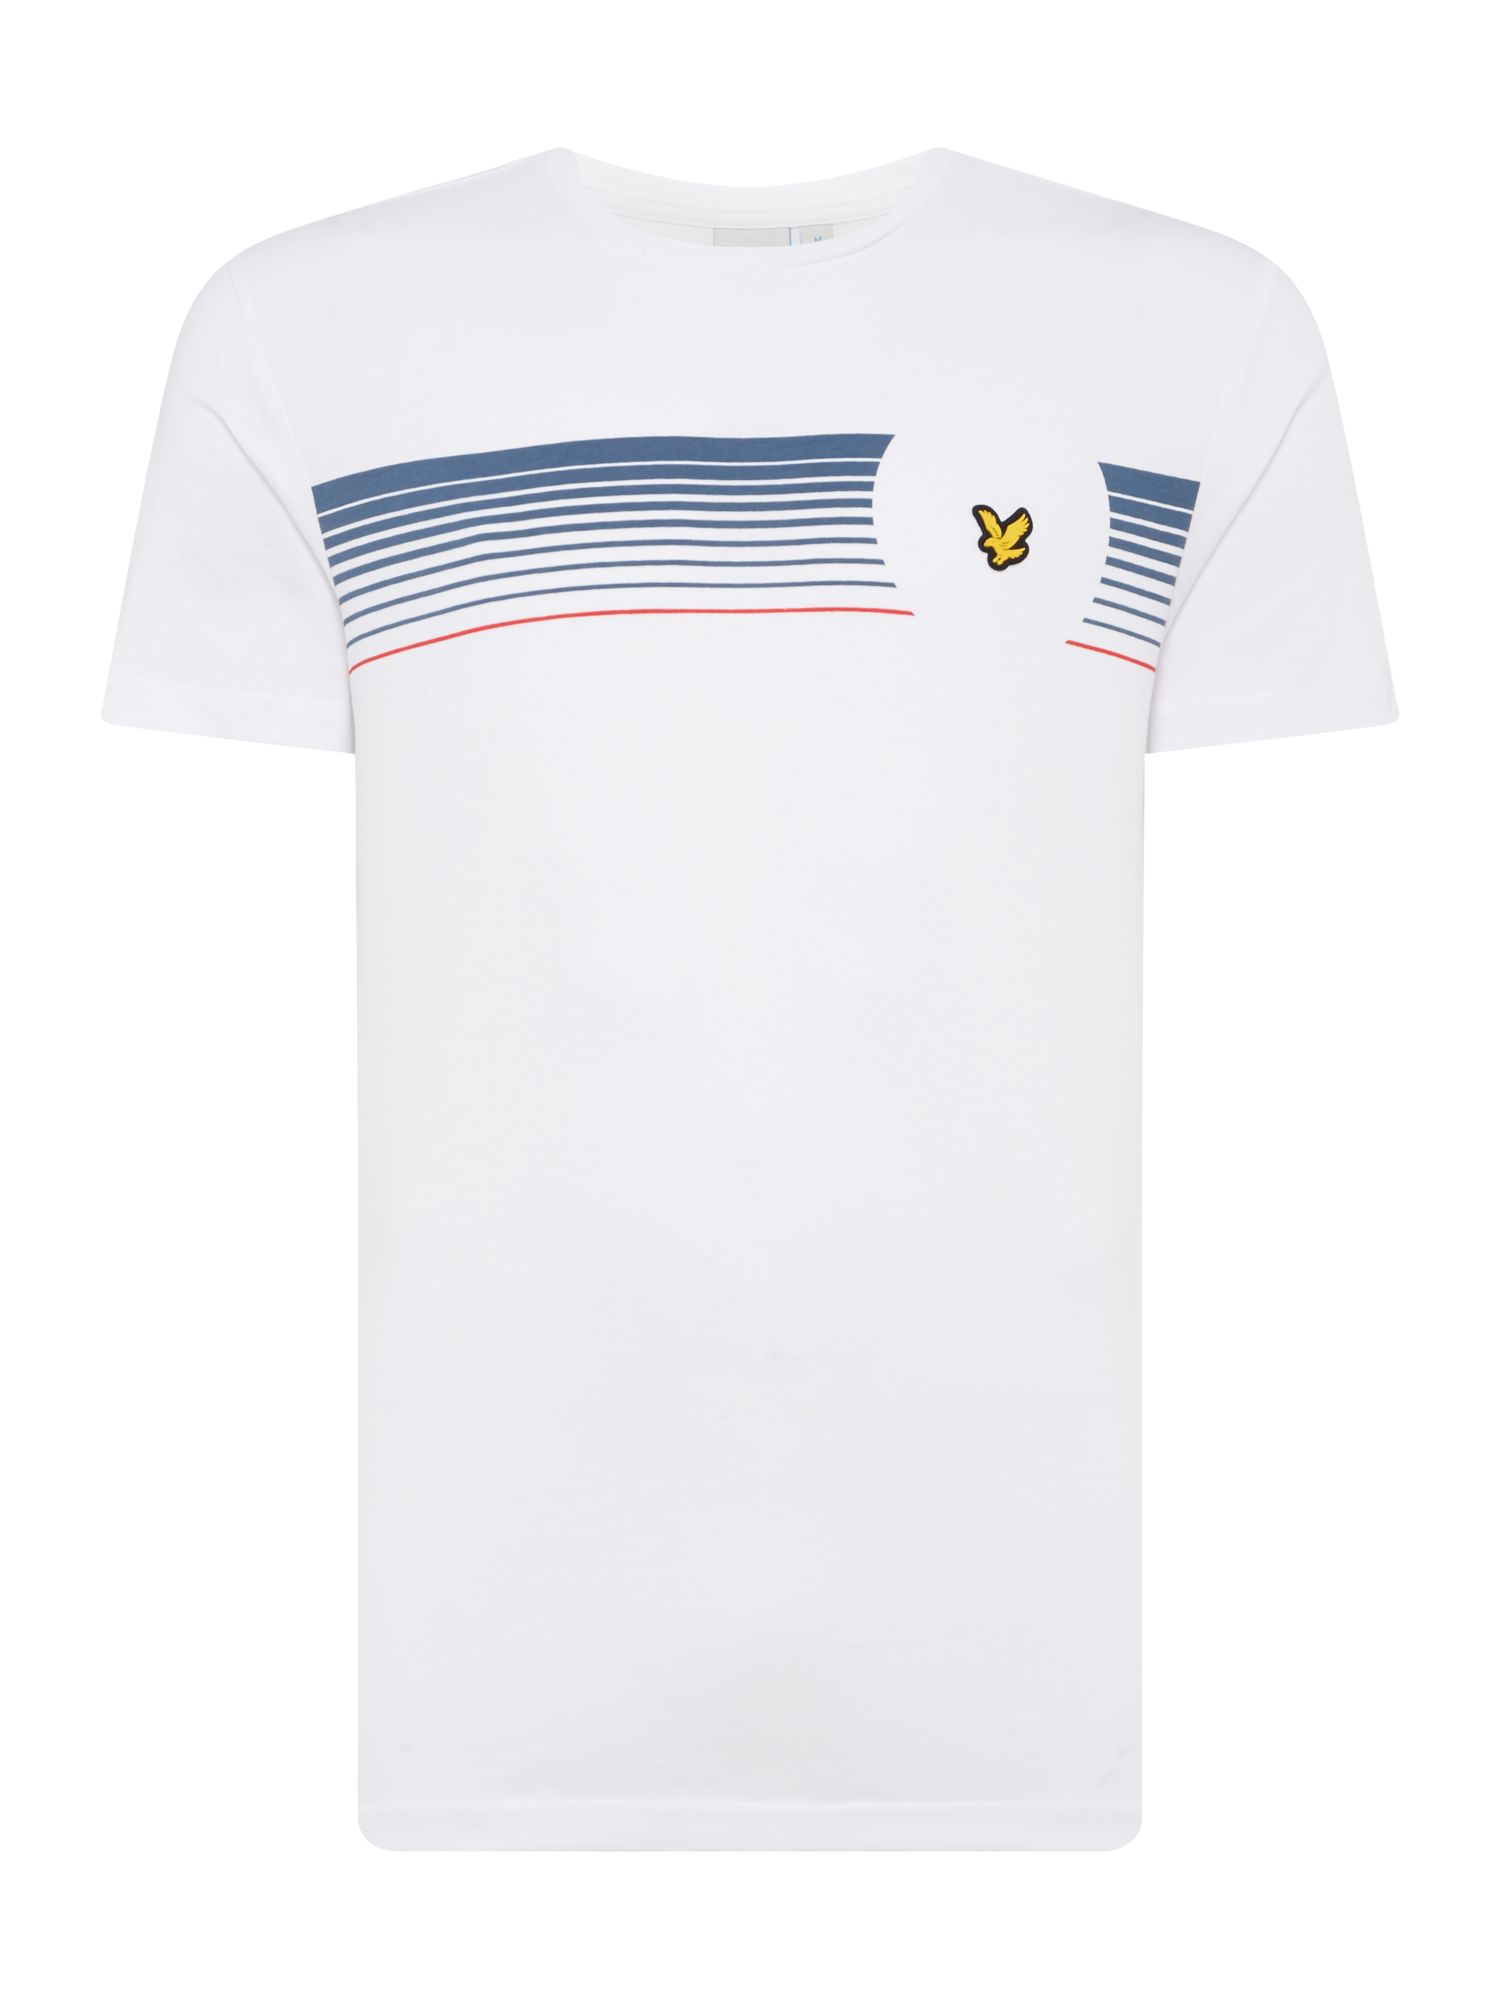 Men's Lyle and Scott Robson graphic print short sleeve tshirt, White